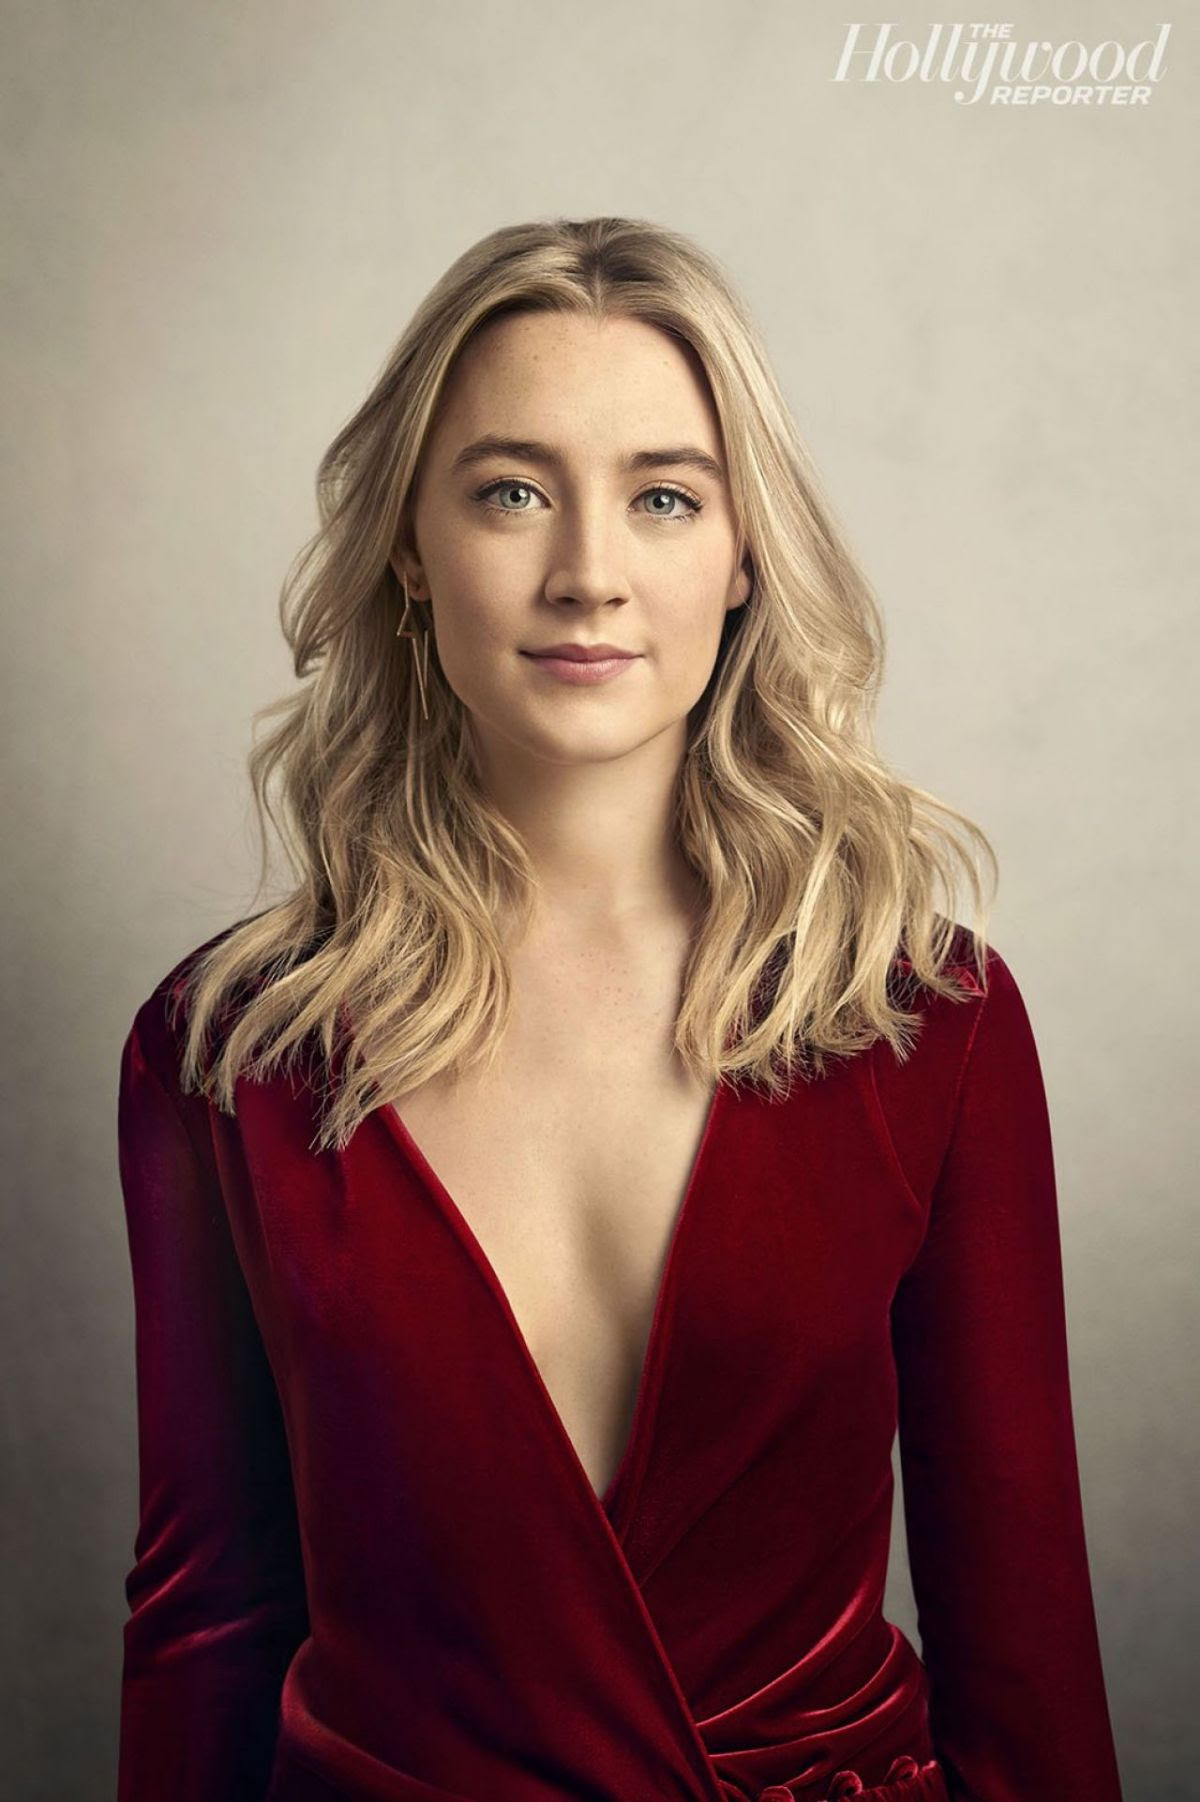 SAOIRSE RONAN for The Hollywood Reporter 03/15/2016